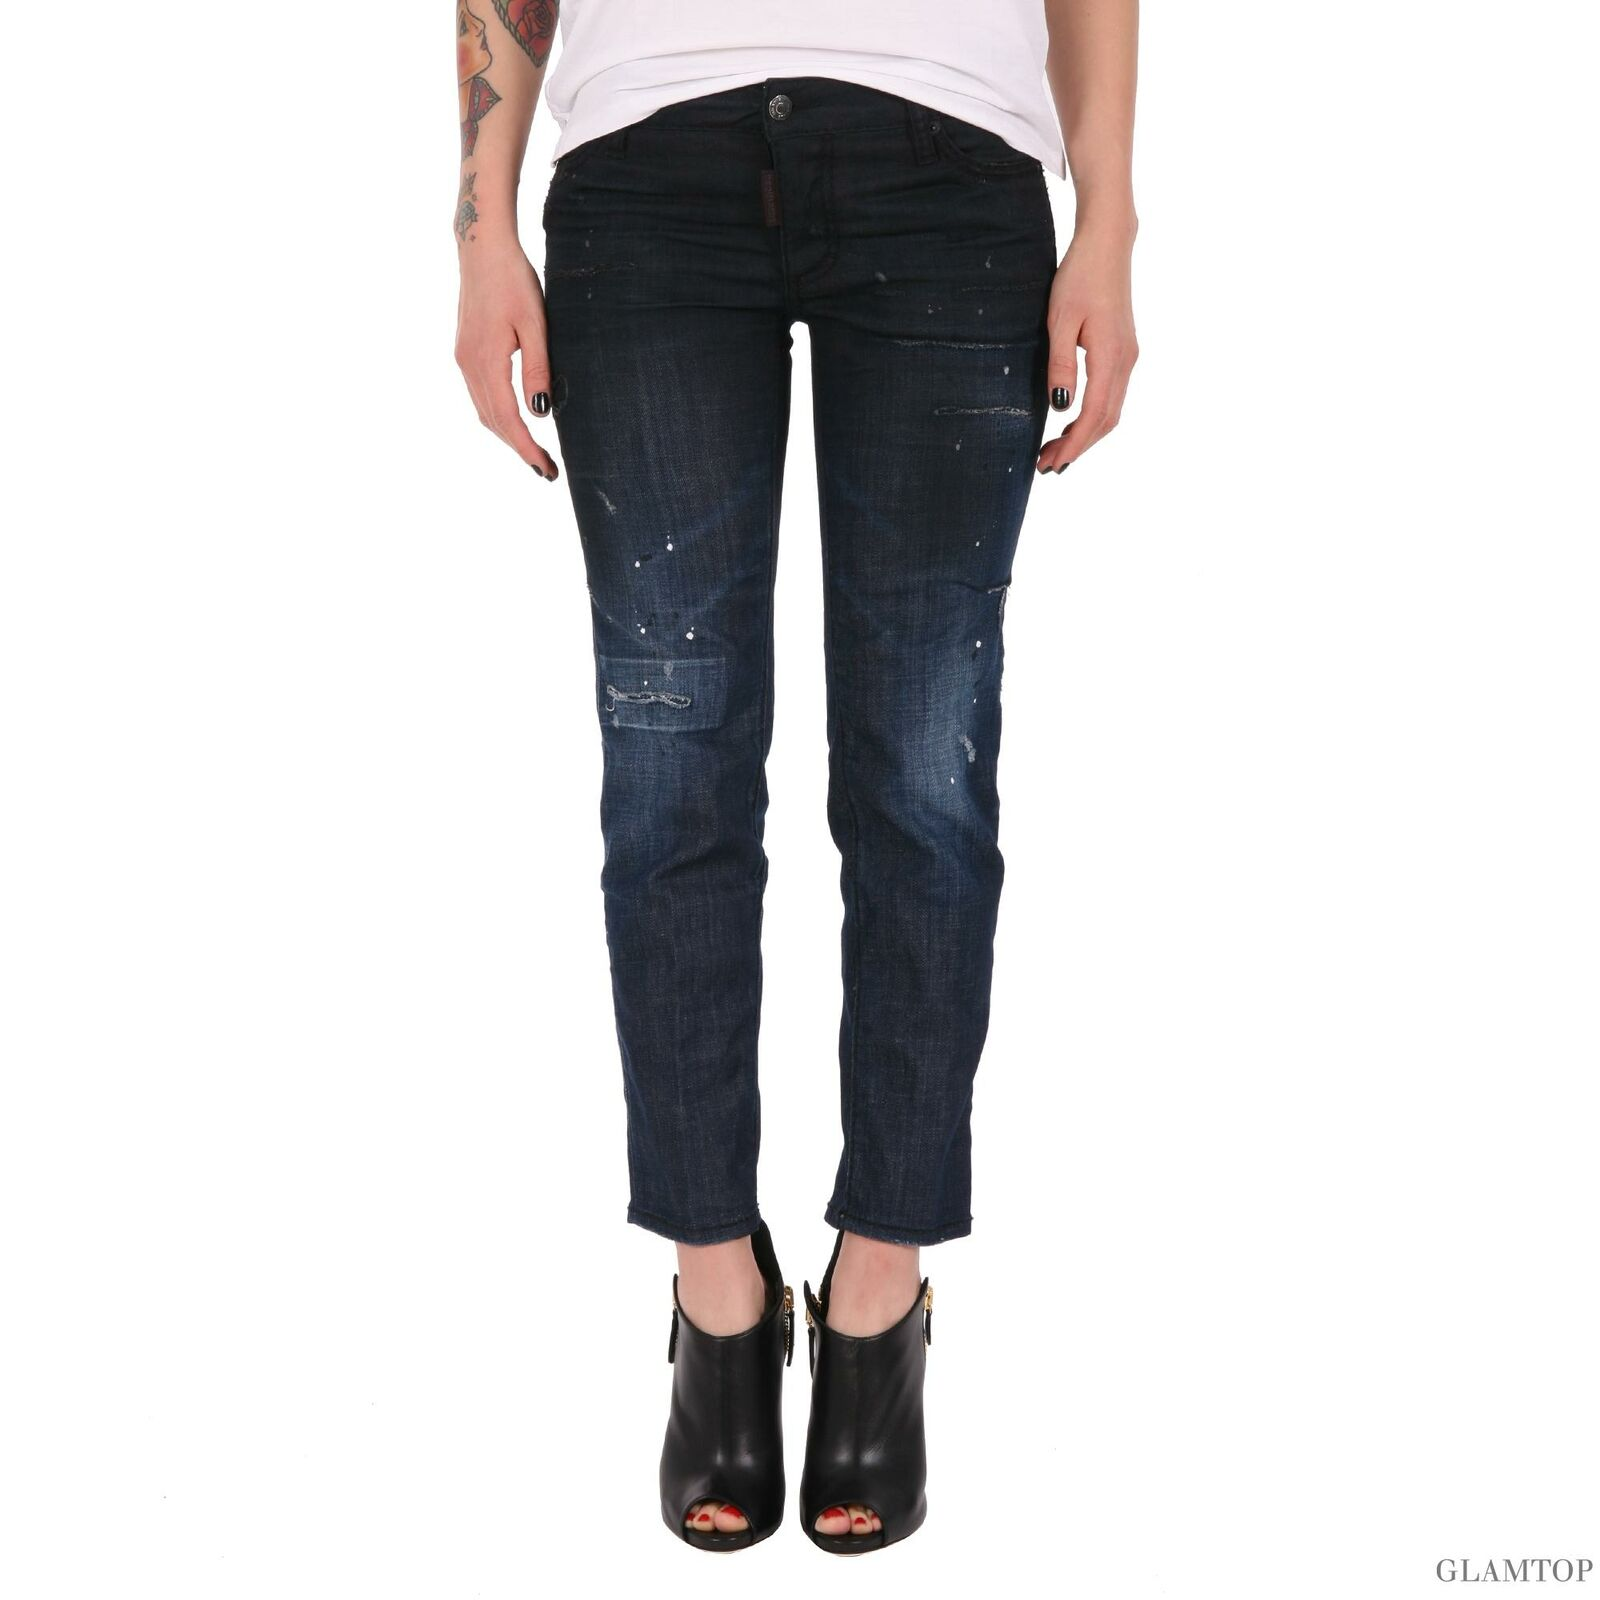 Bb6929 Dsquared2 women's bluee jeans trousers